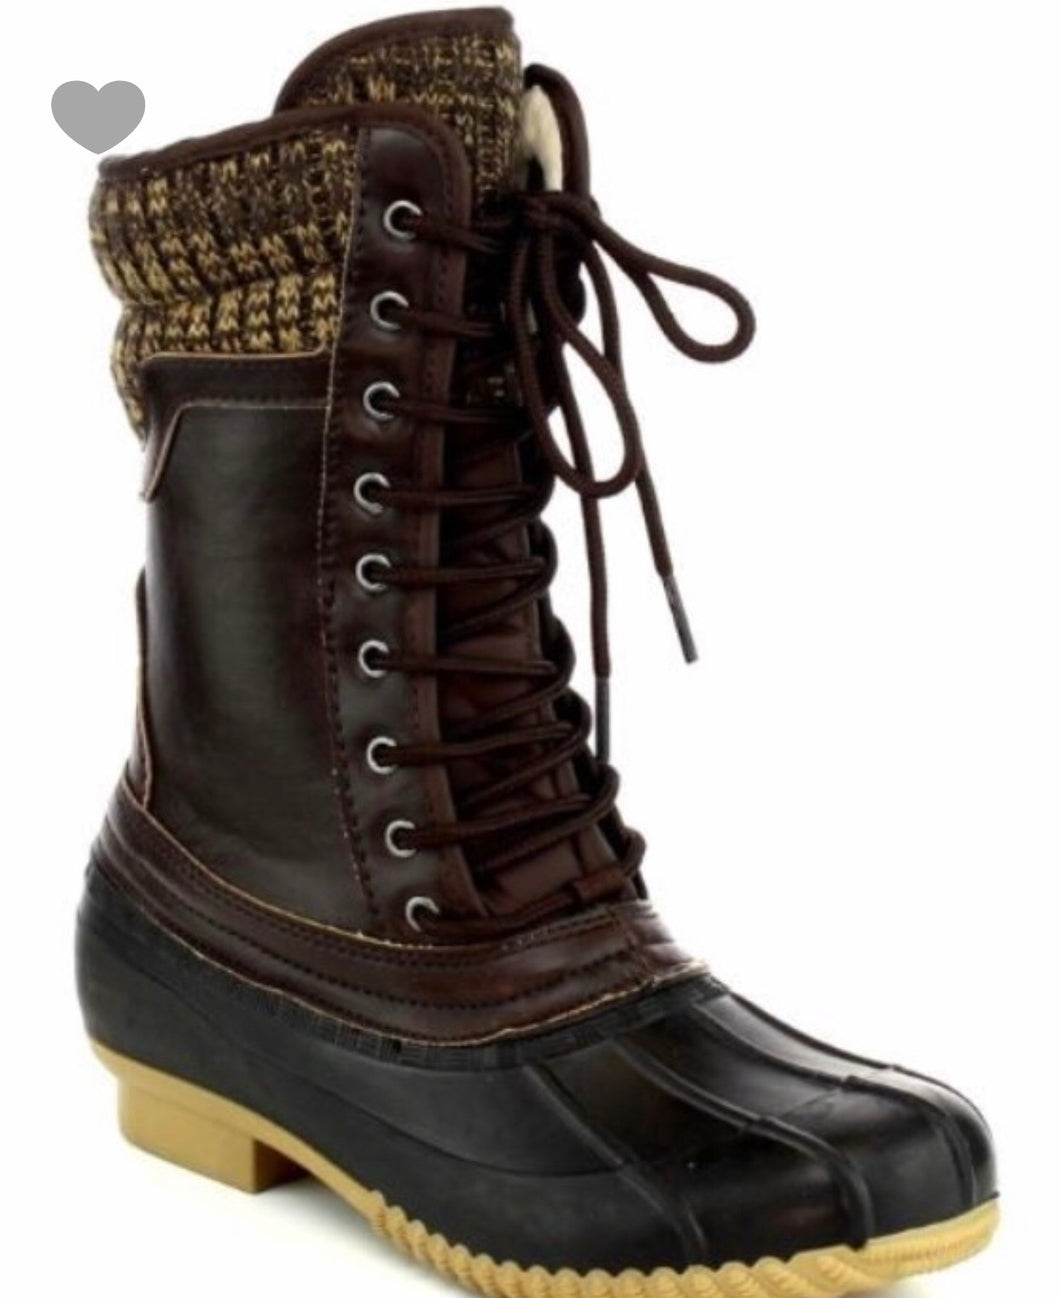 Lace up duck boots